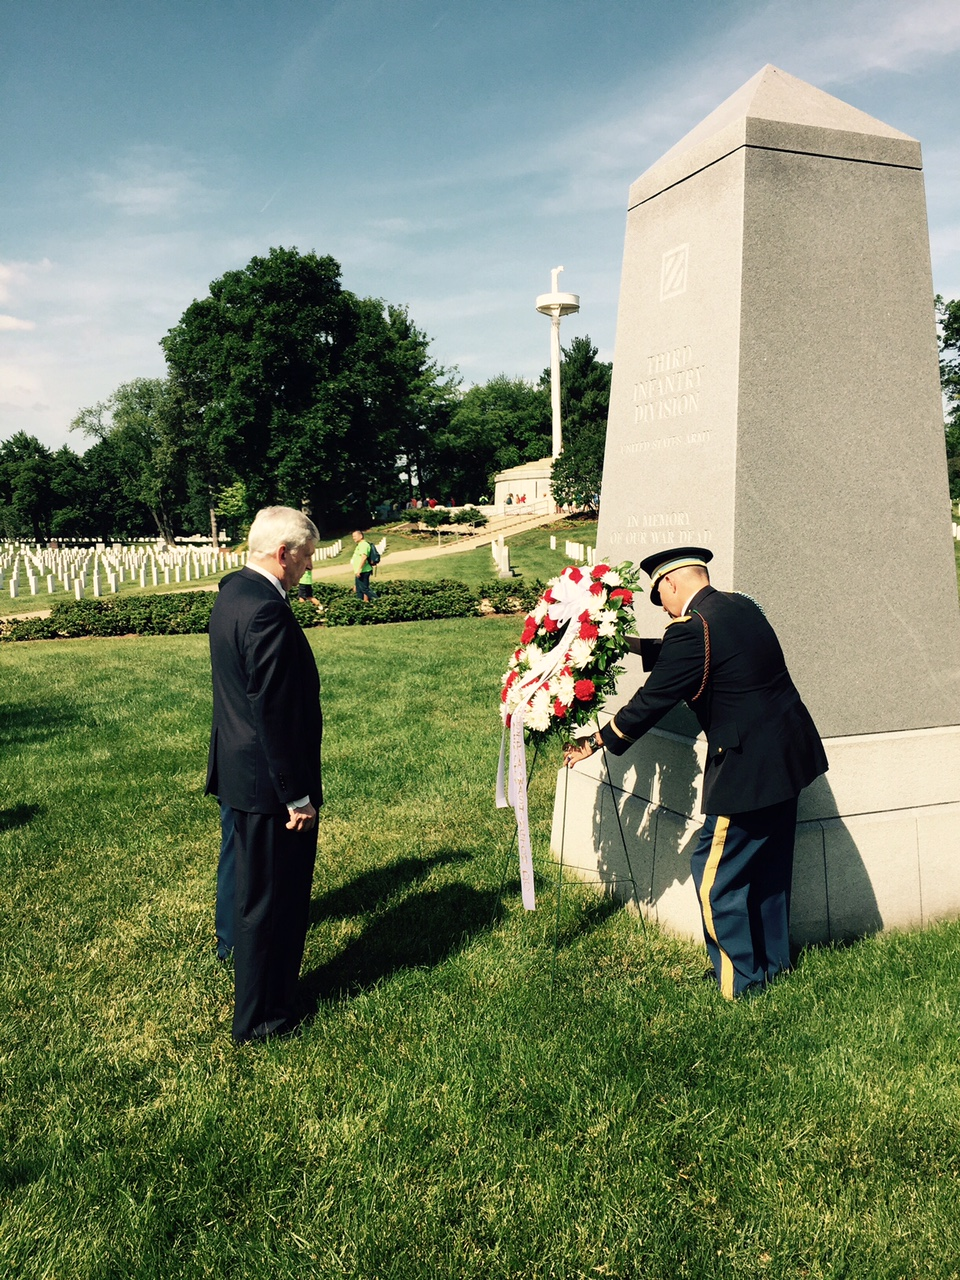 Ambassador Manz laying a wreath at the 3rd ID monument